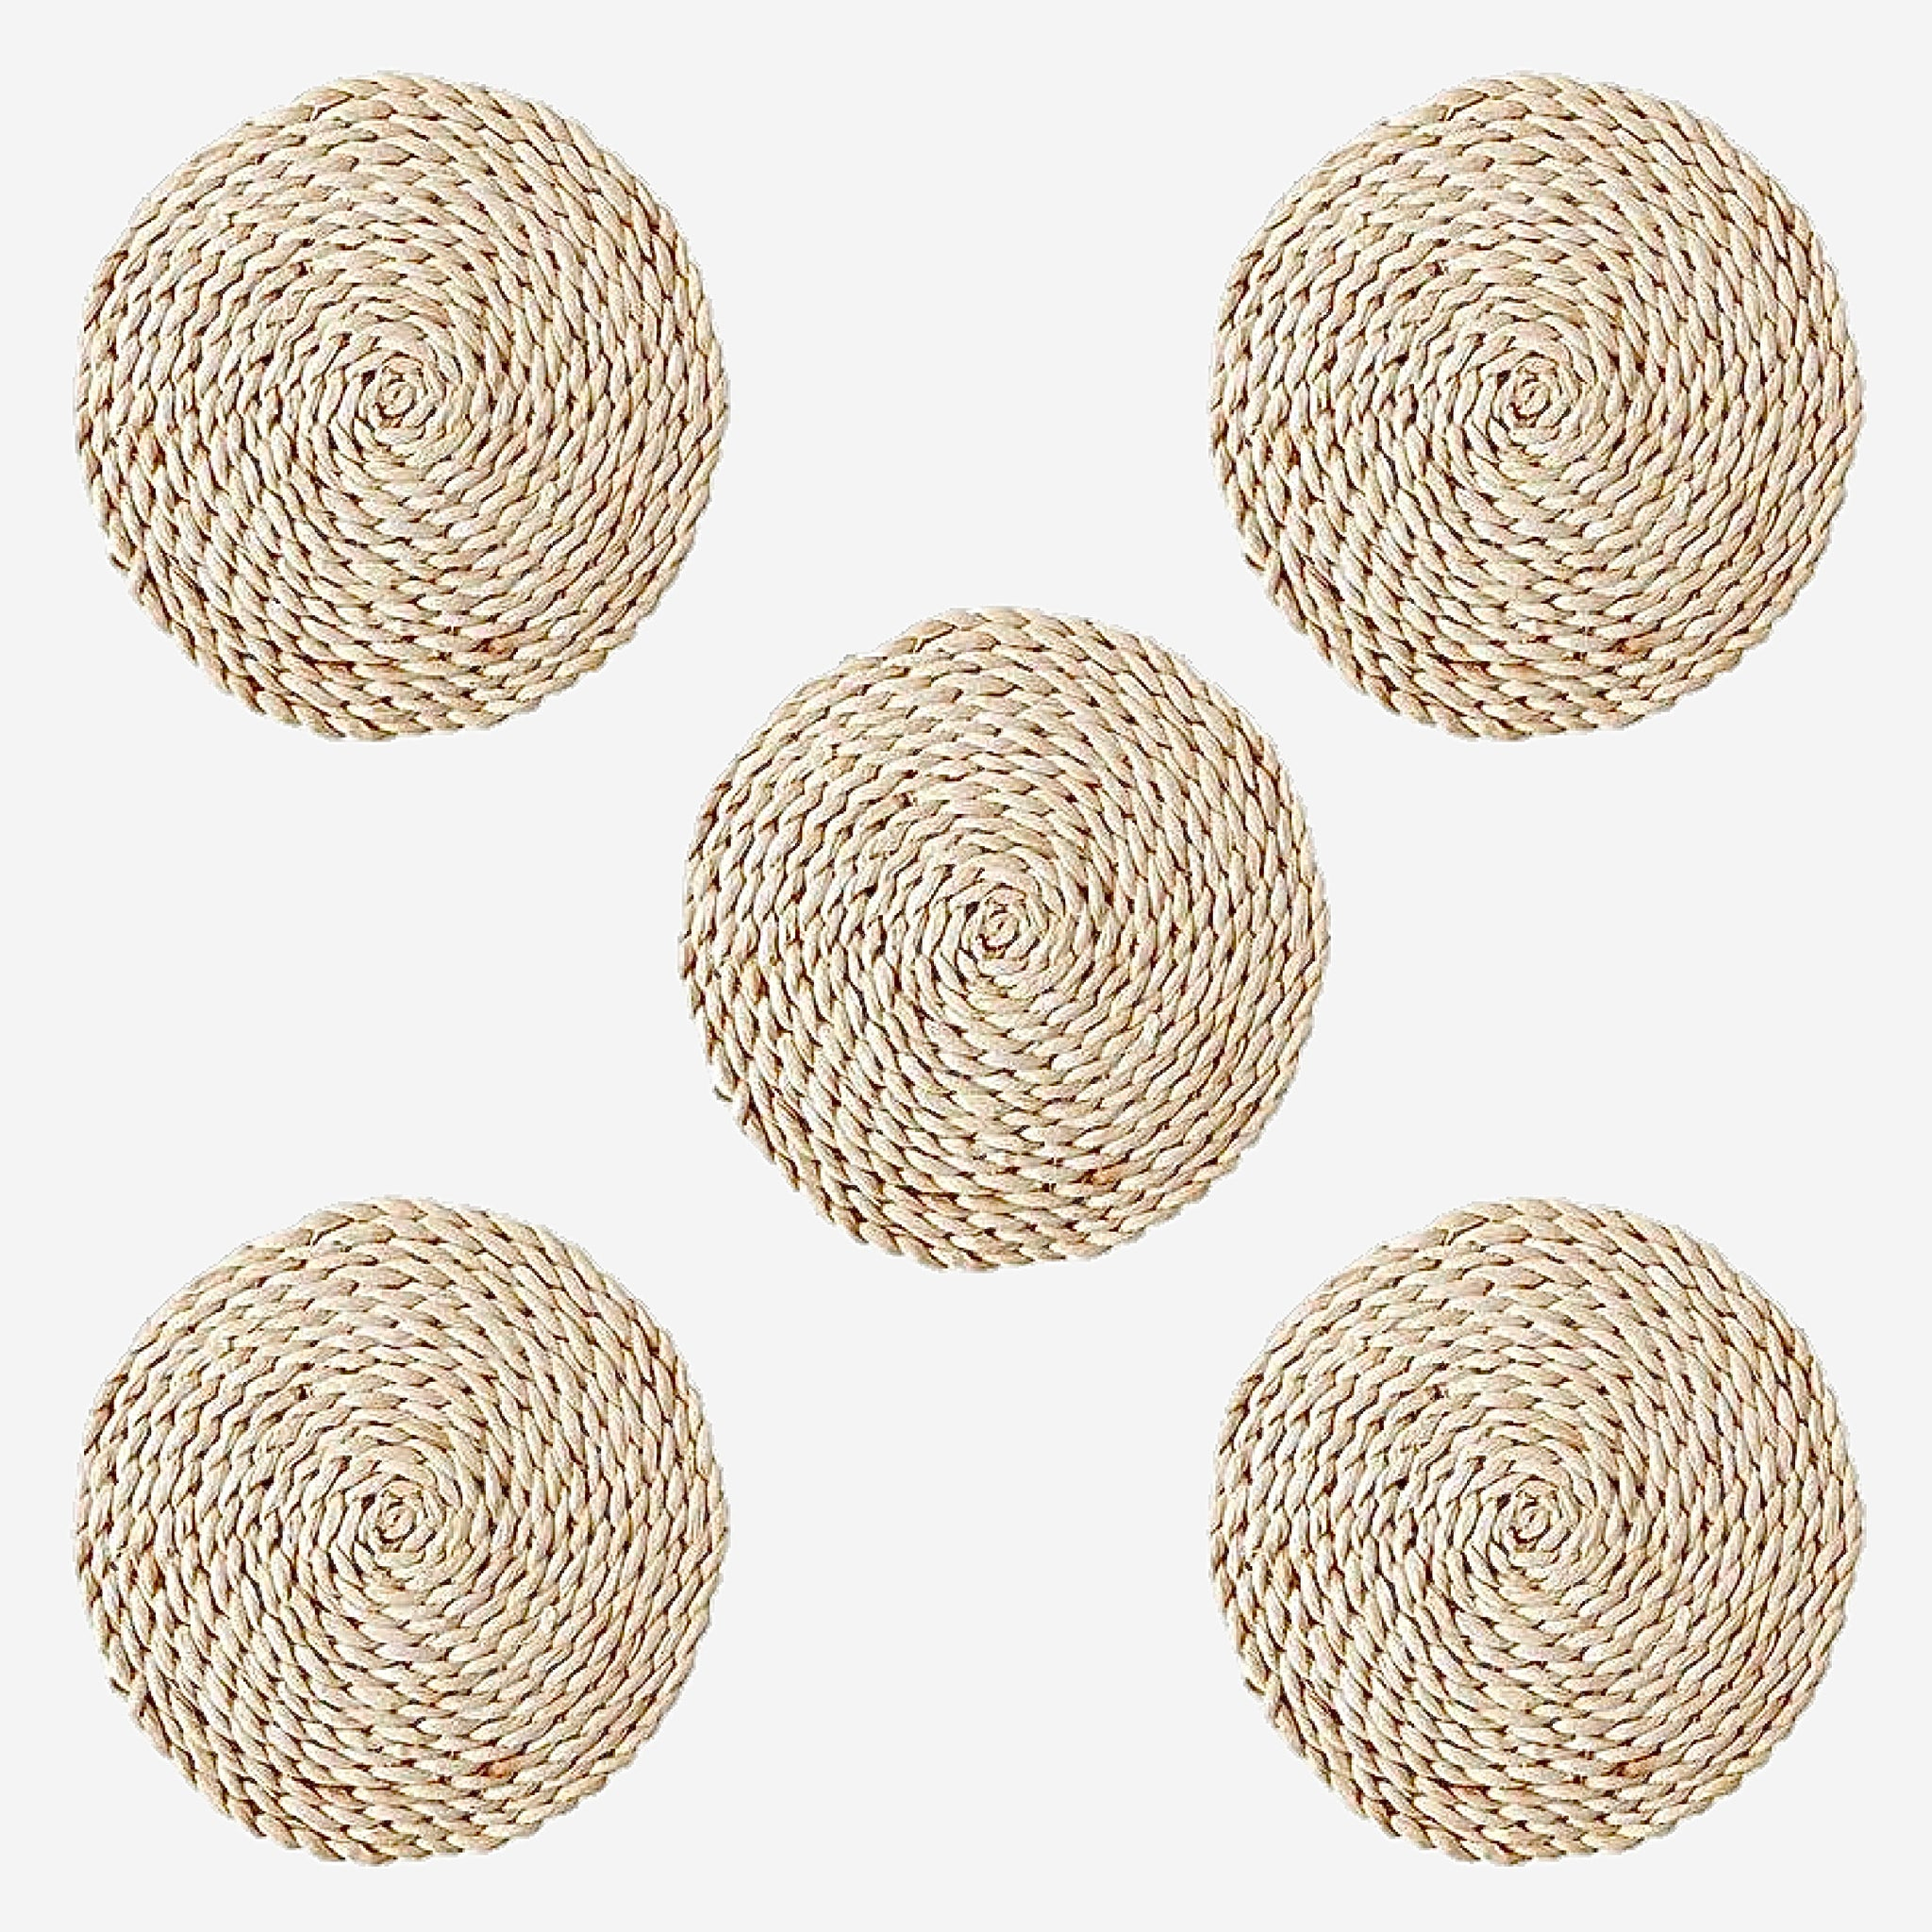 Rattan Placemats Straw Dining Table Mats Trendy